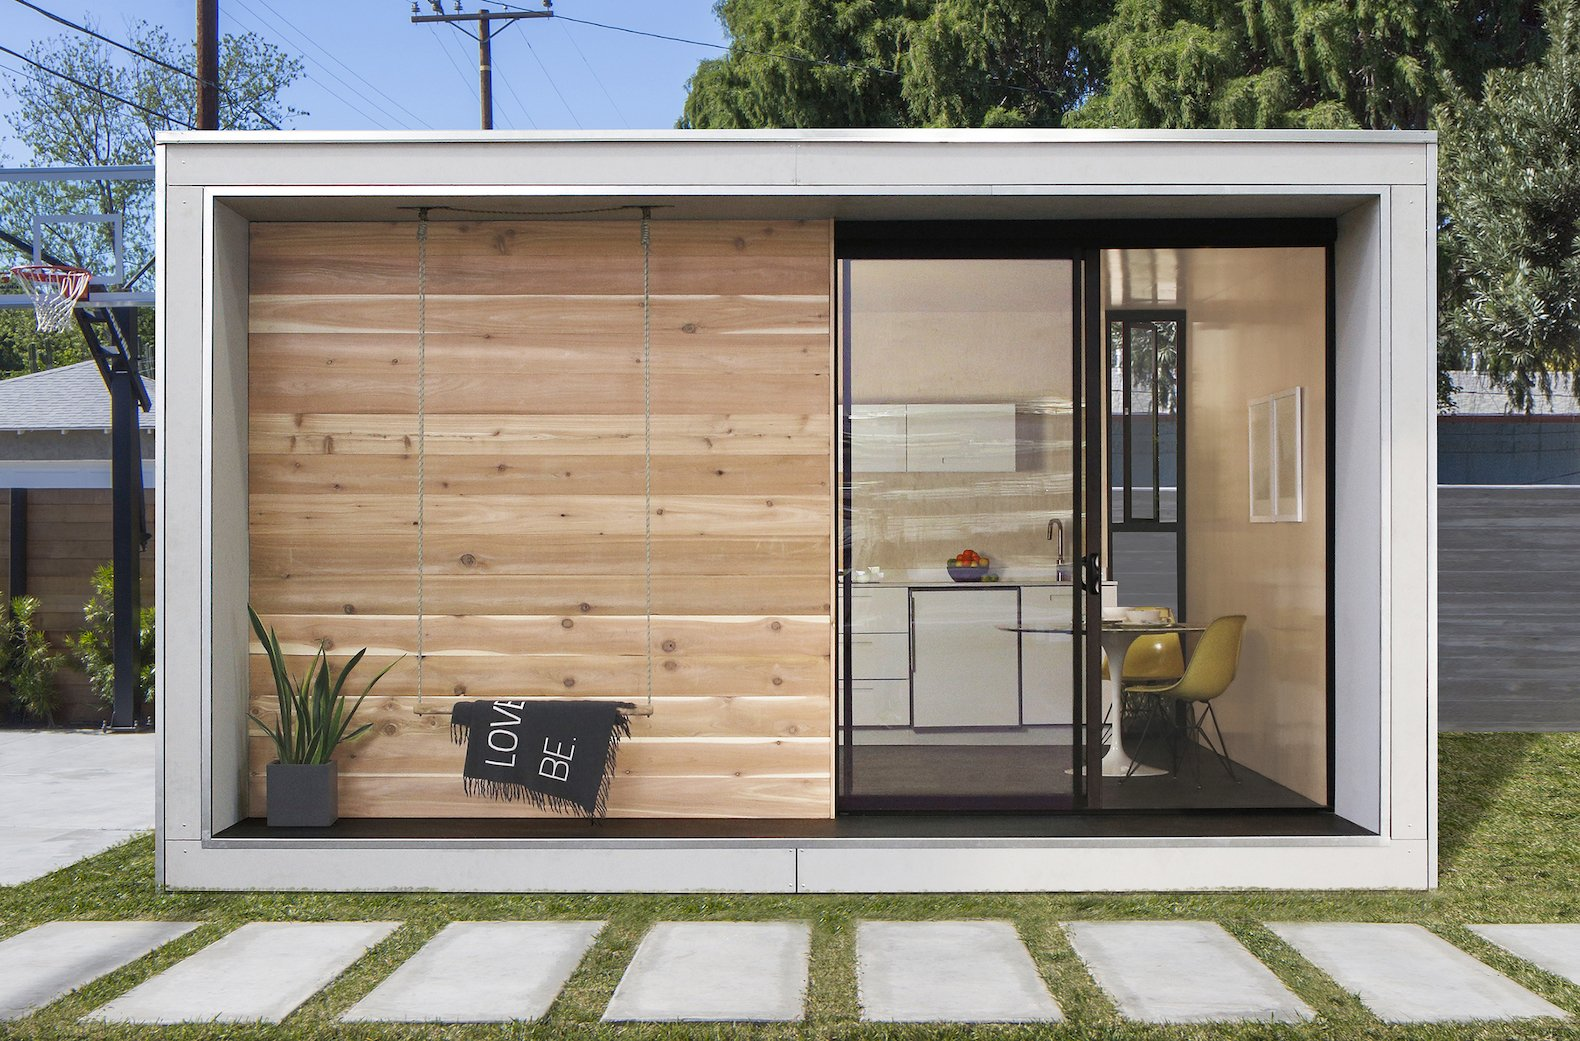 6 Prefab Companies Ready To Build Your New Backyard Office Dwell